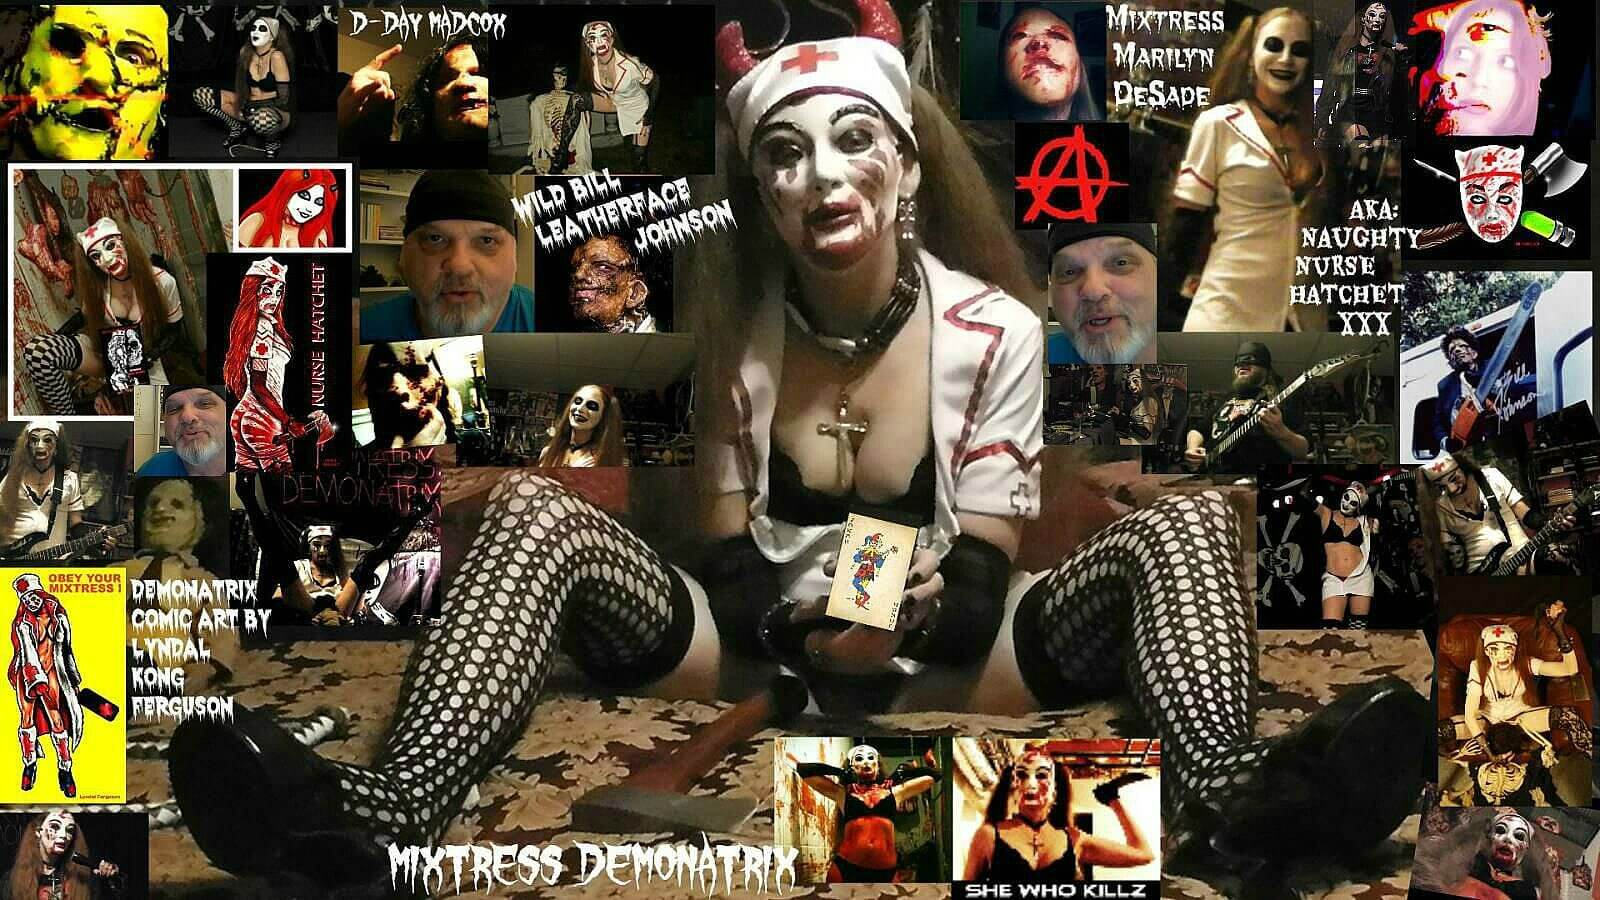 nurse hatchet bill johnson interview2 - Wild Bill Leatherface 2 Johnson and Naughty Nurse Hatchet Unleash the Monsterpiece: B.O.H.I.C.A. Bend Over Here It Cums Again